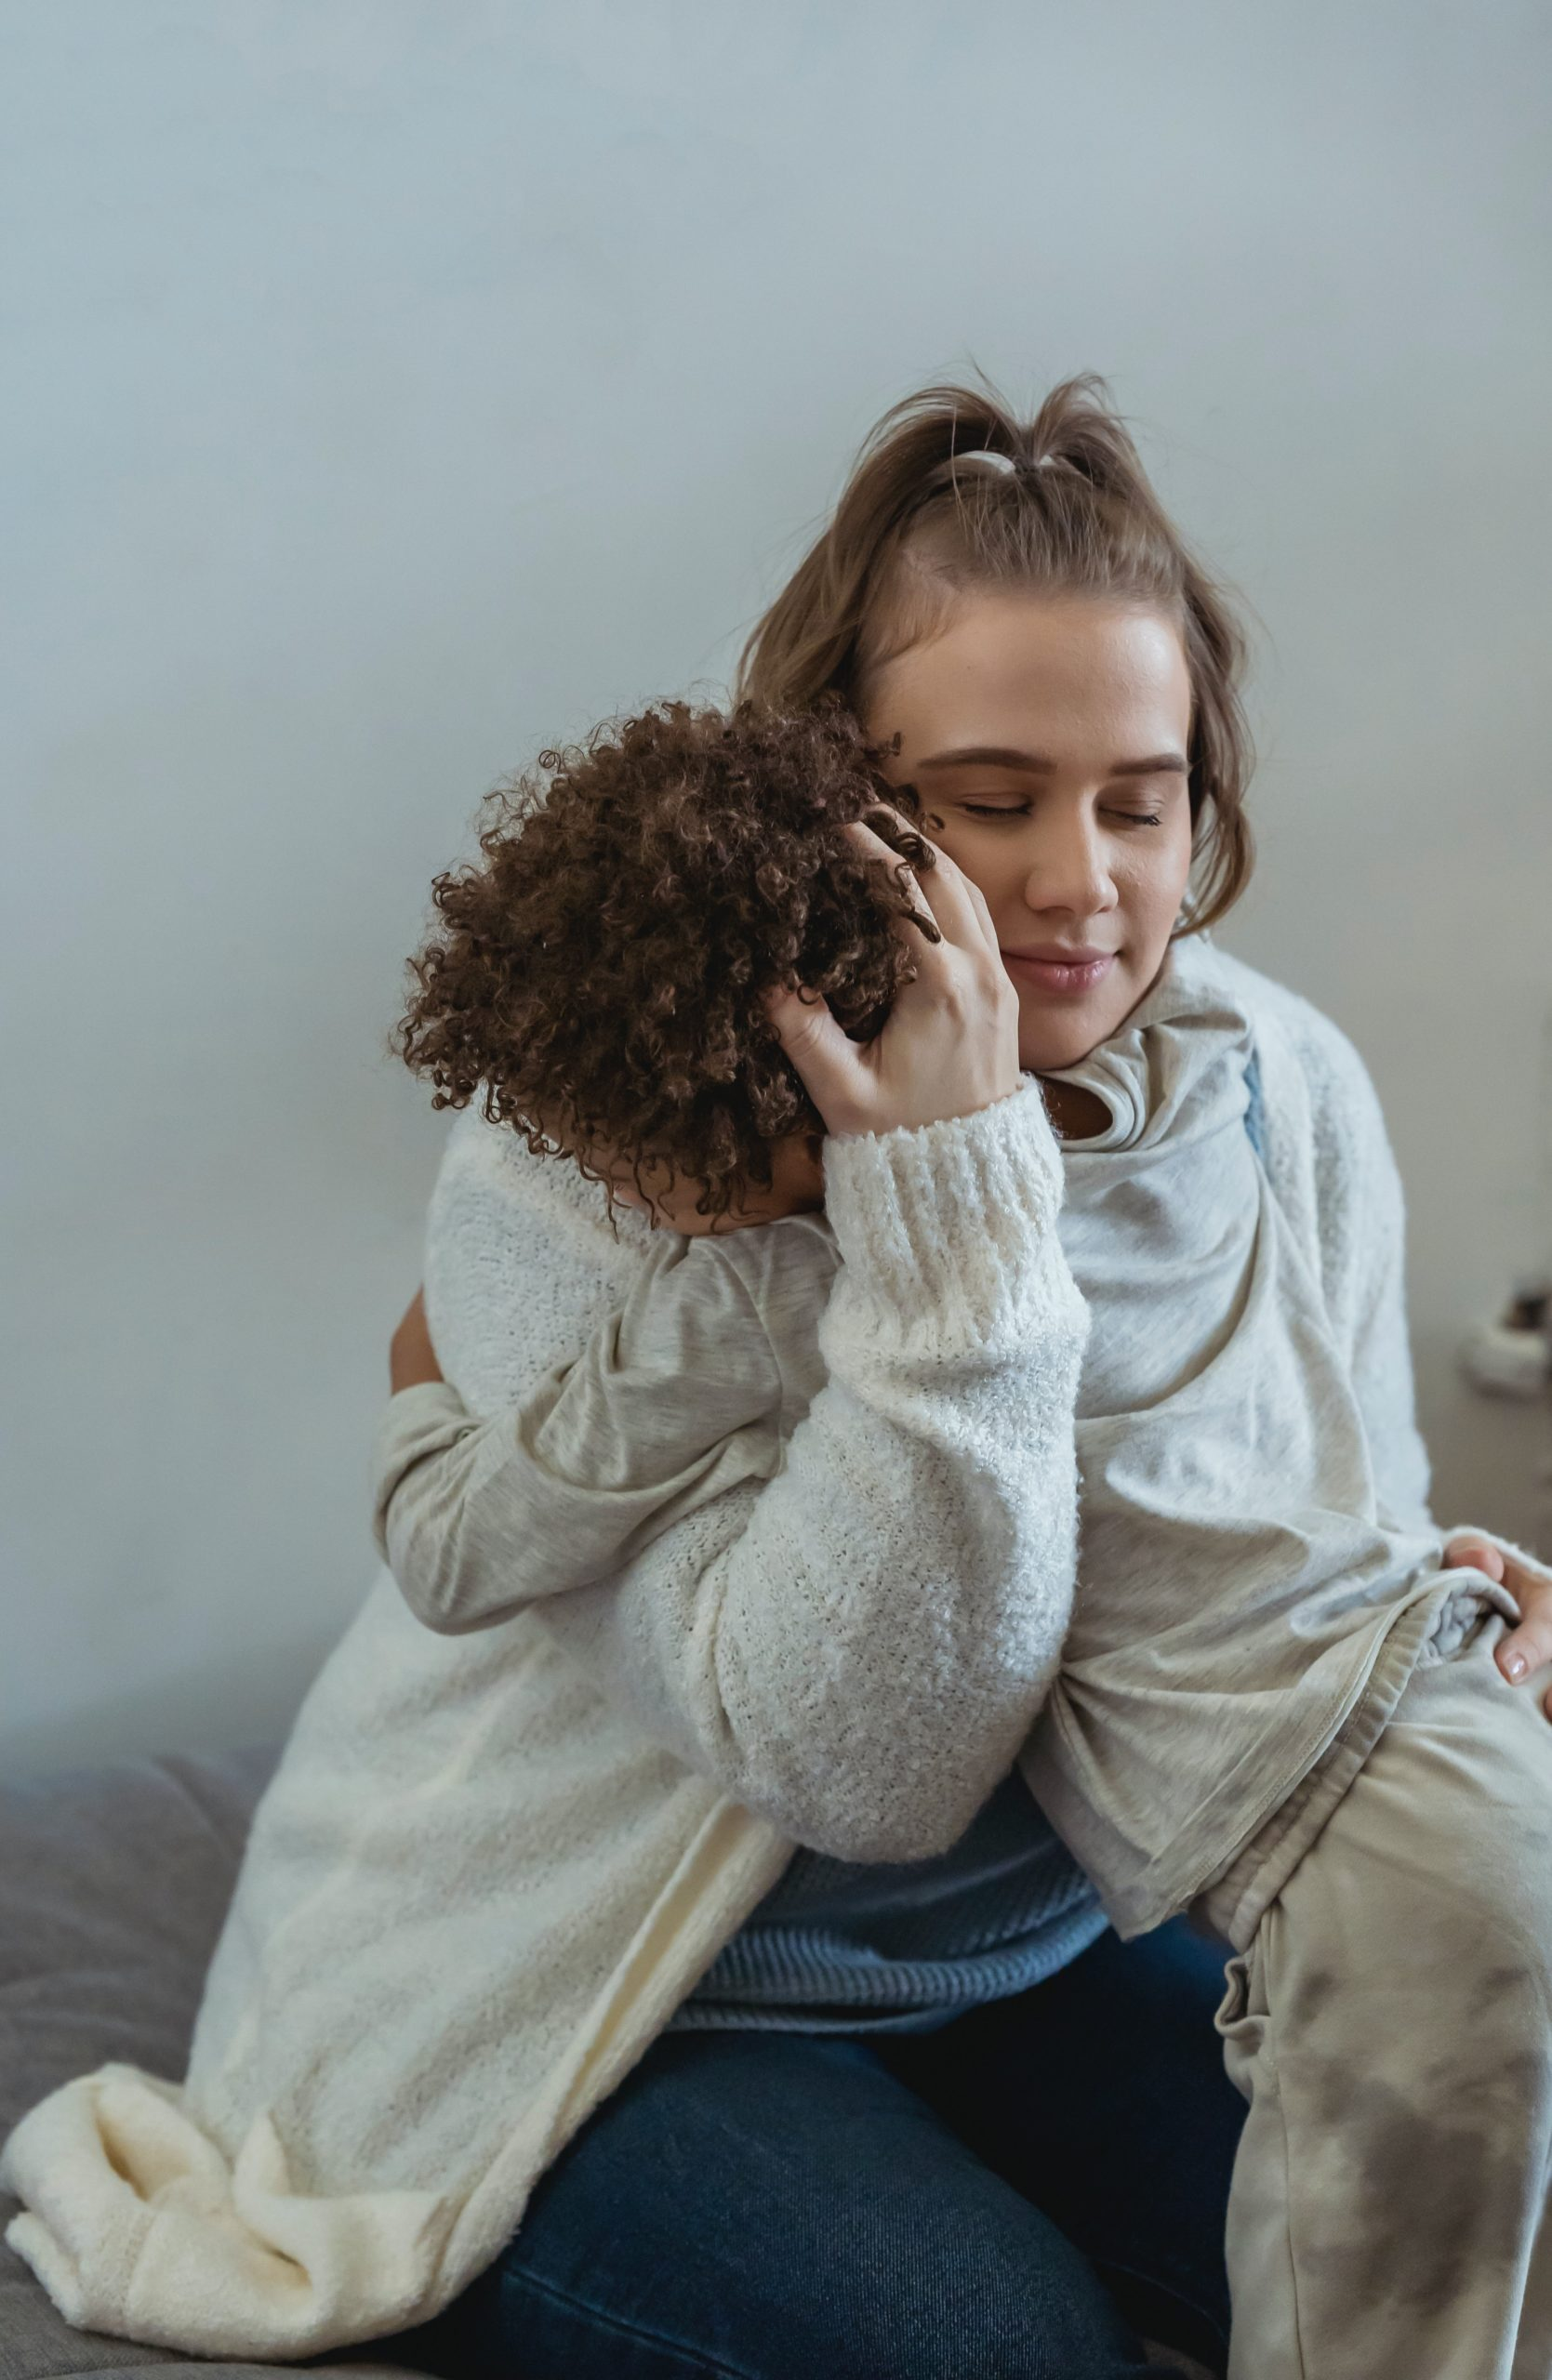 Dear Katherine: My Kid Thinks I Don't Take Her Feelings Seriously